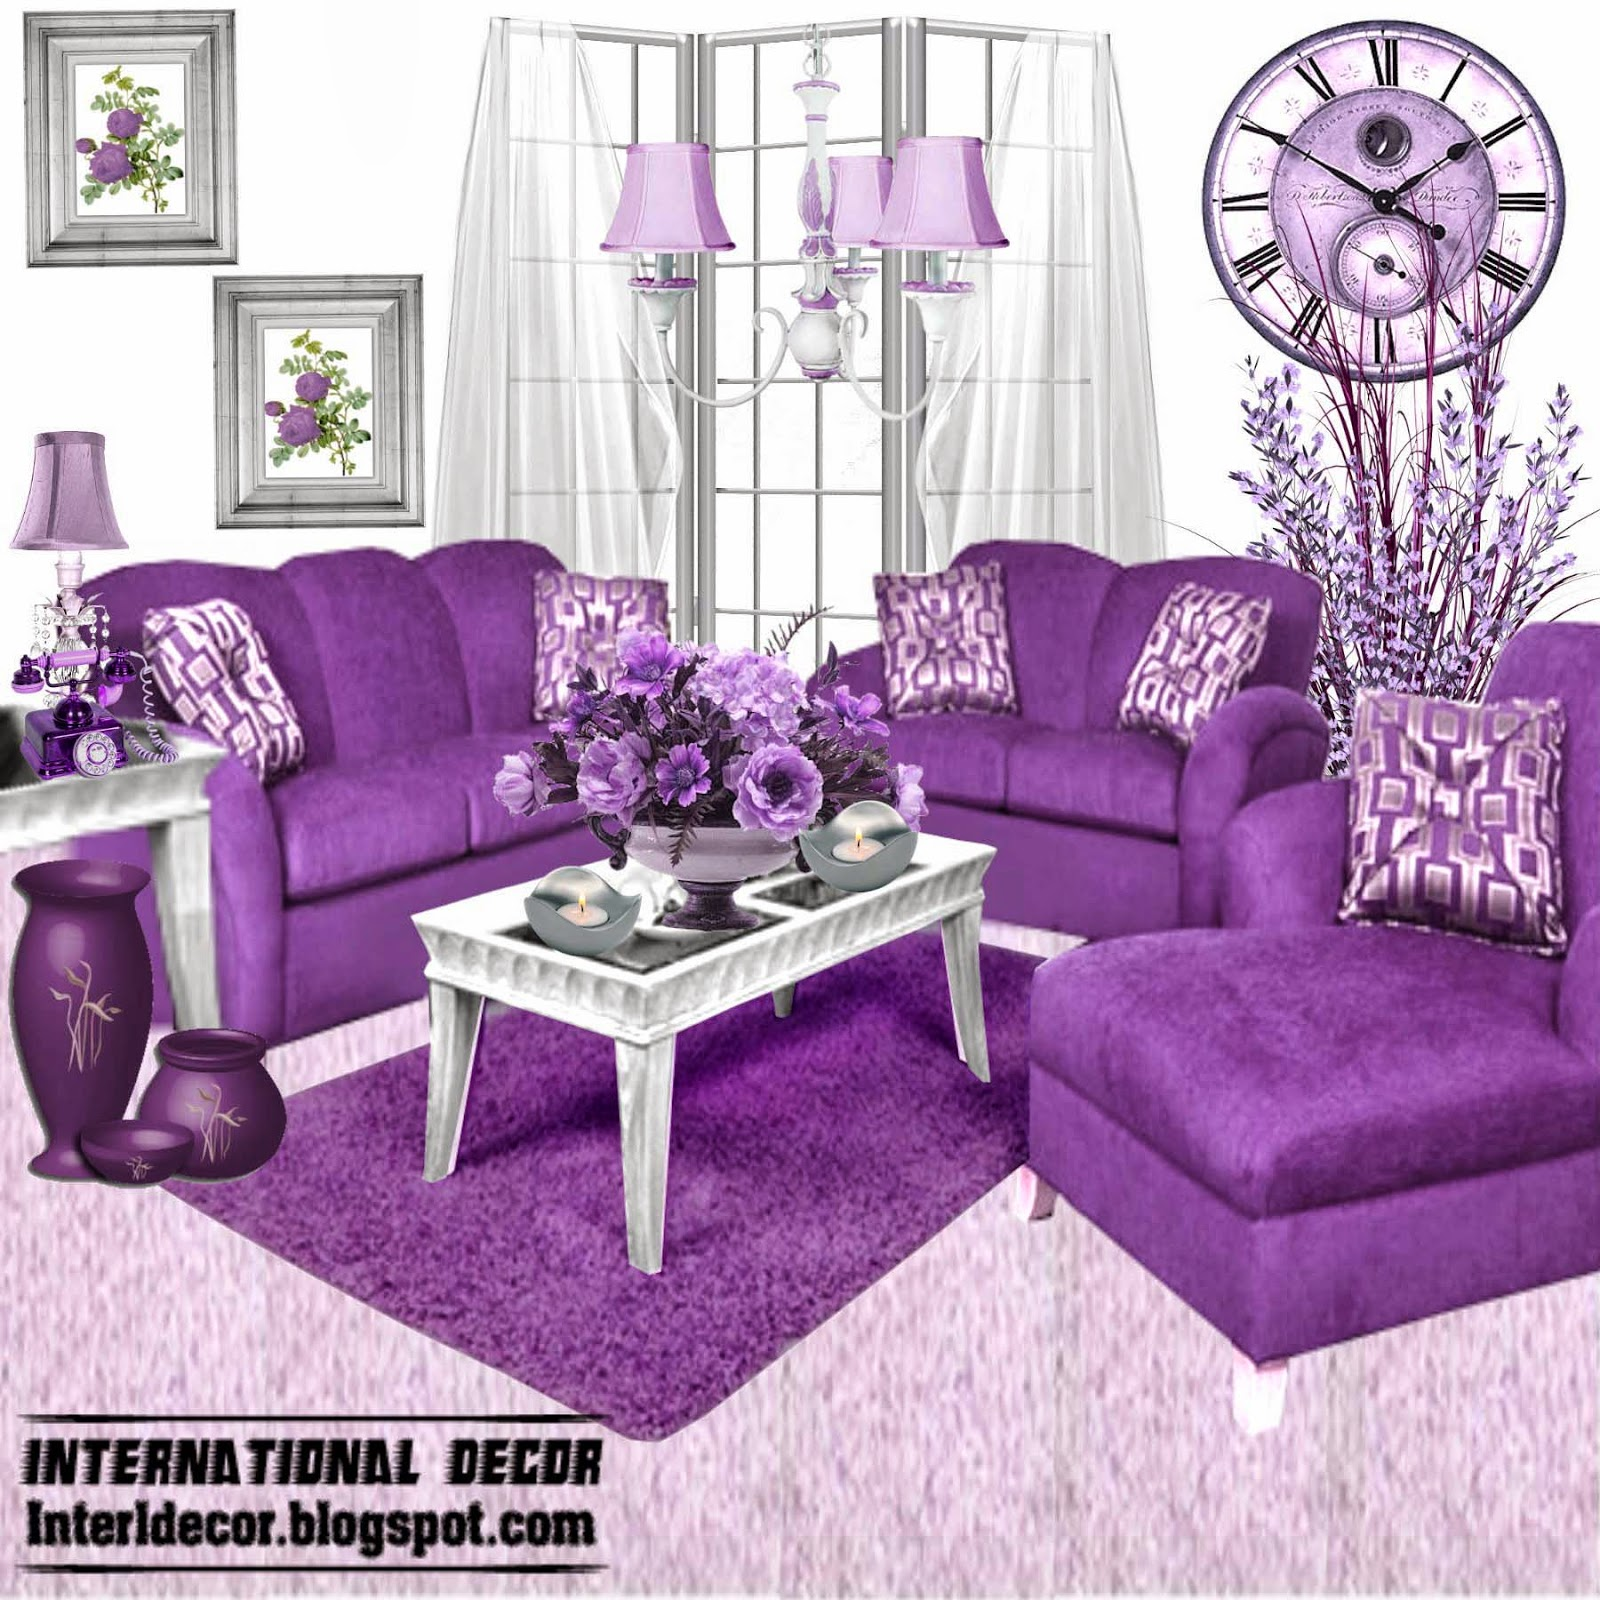 Luxury purple furniture sets sofas chairs for living for Sitting room furniture design